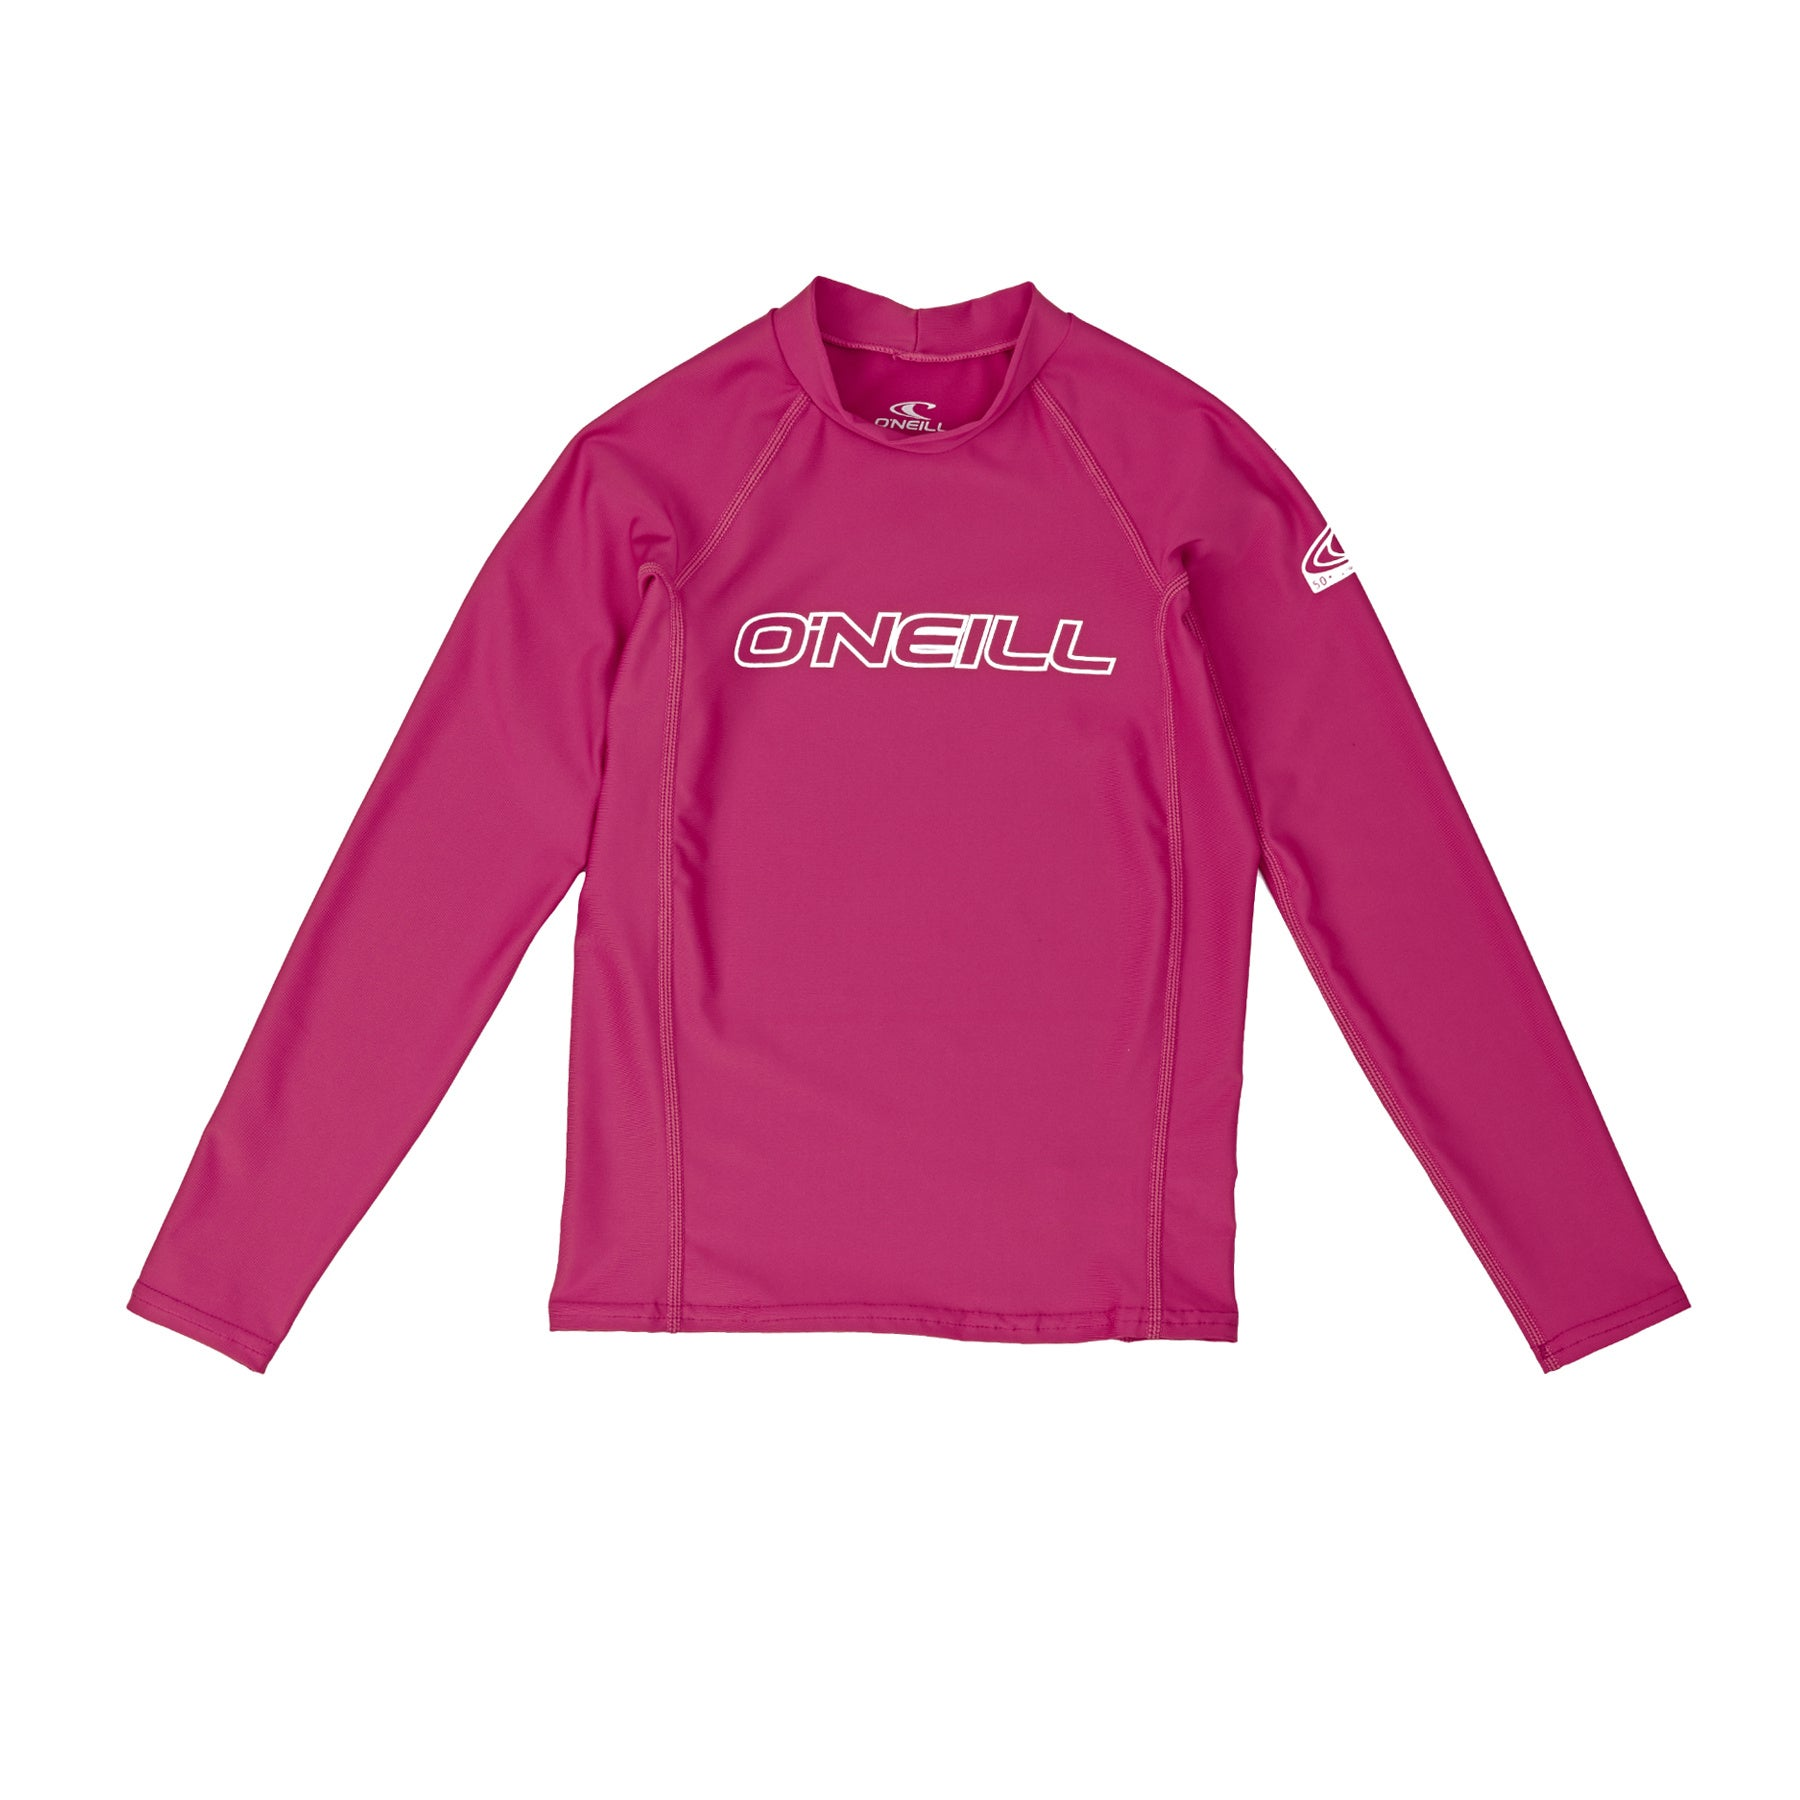 O Neill Basic Skins Long Sleeve Crew Girls Rash Vest